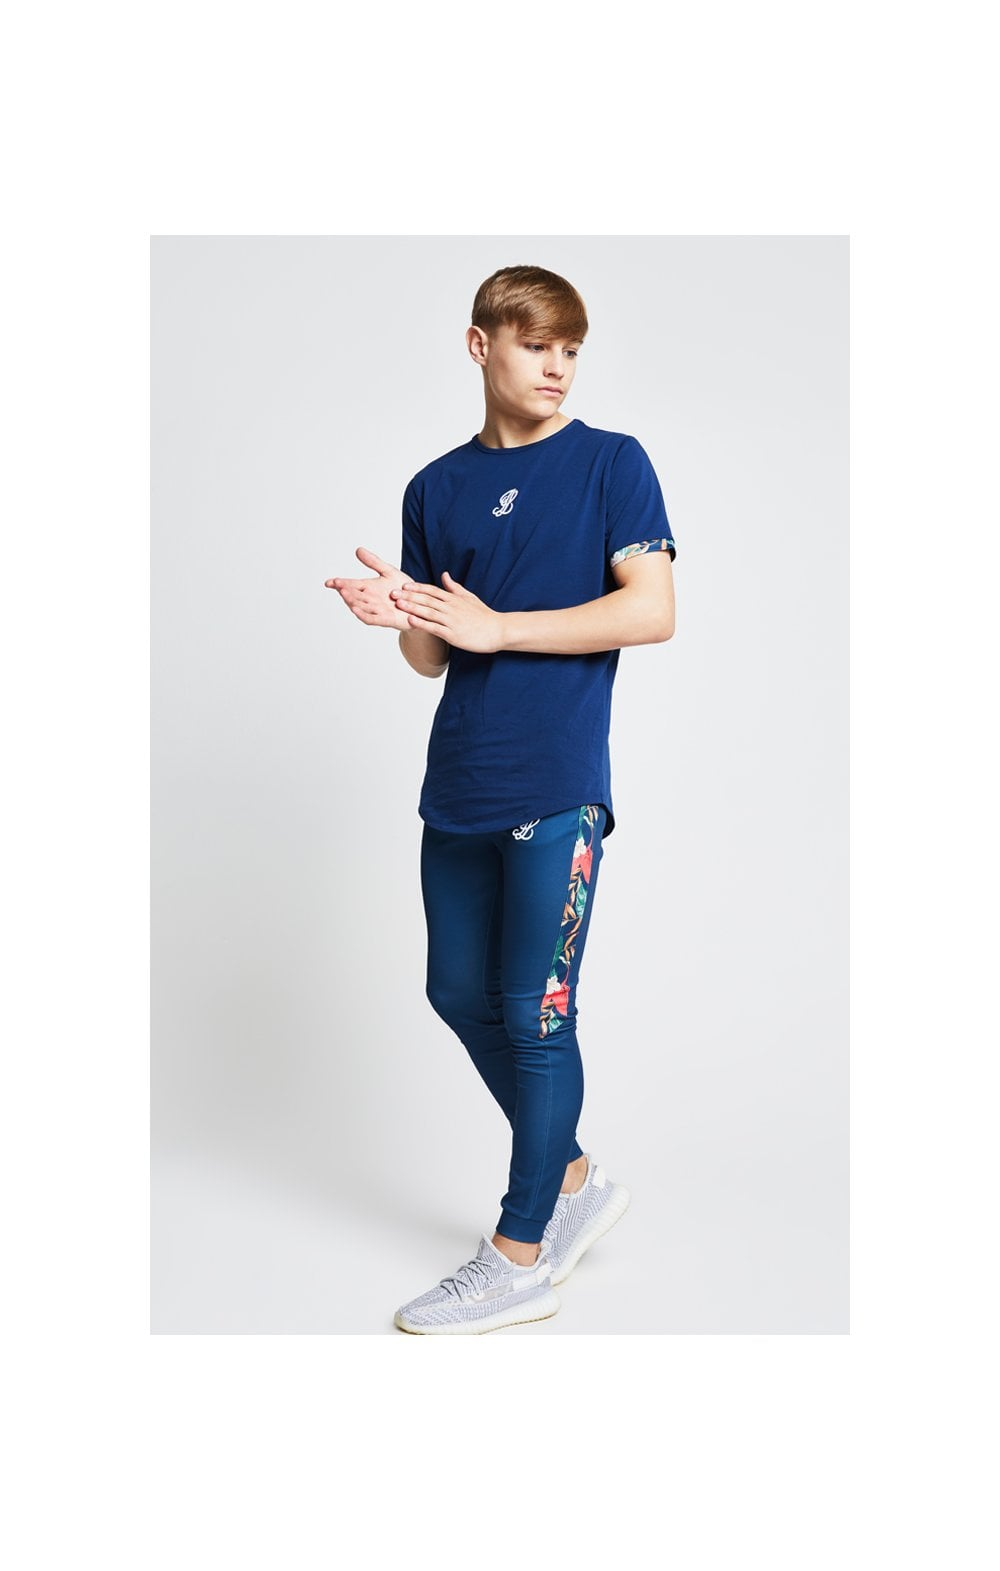 Illusive London Contrast Cuff Tee – Teal & Tropical Leaf (2)